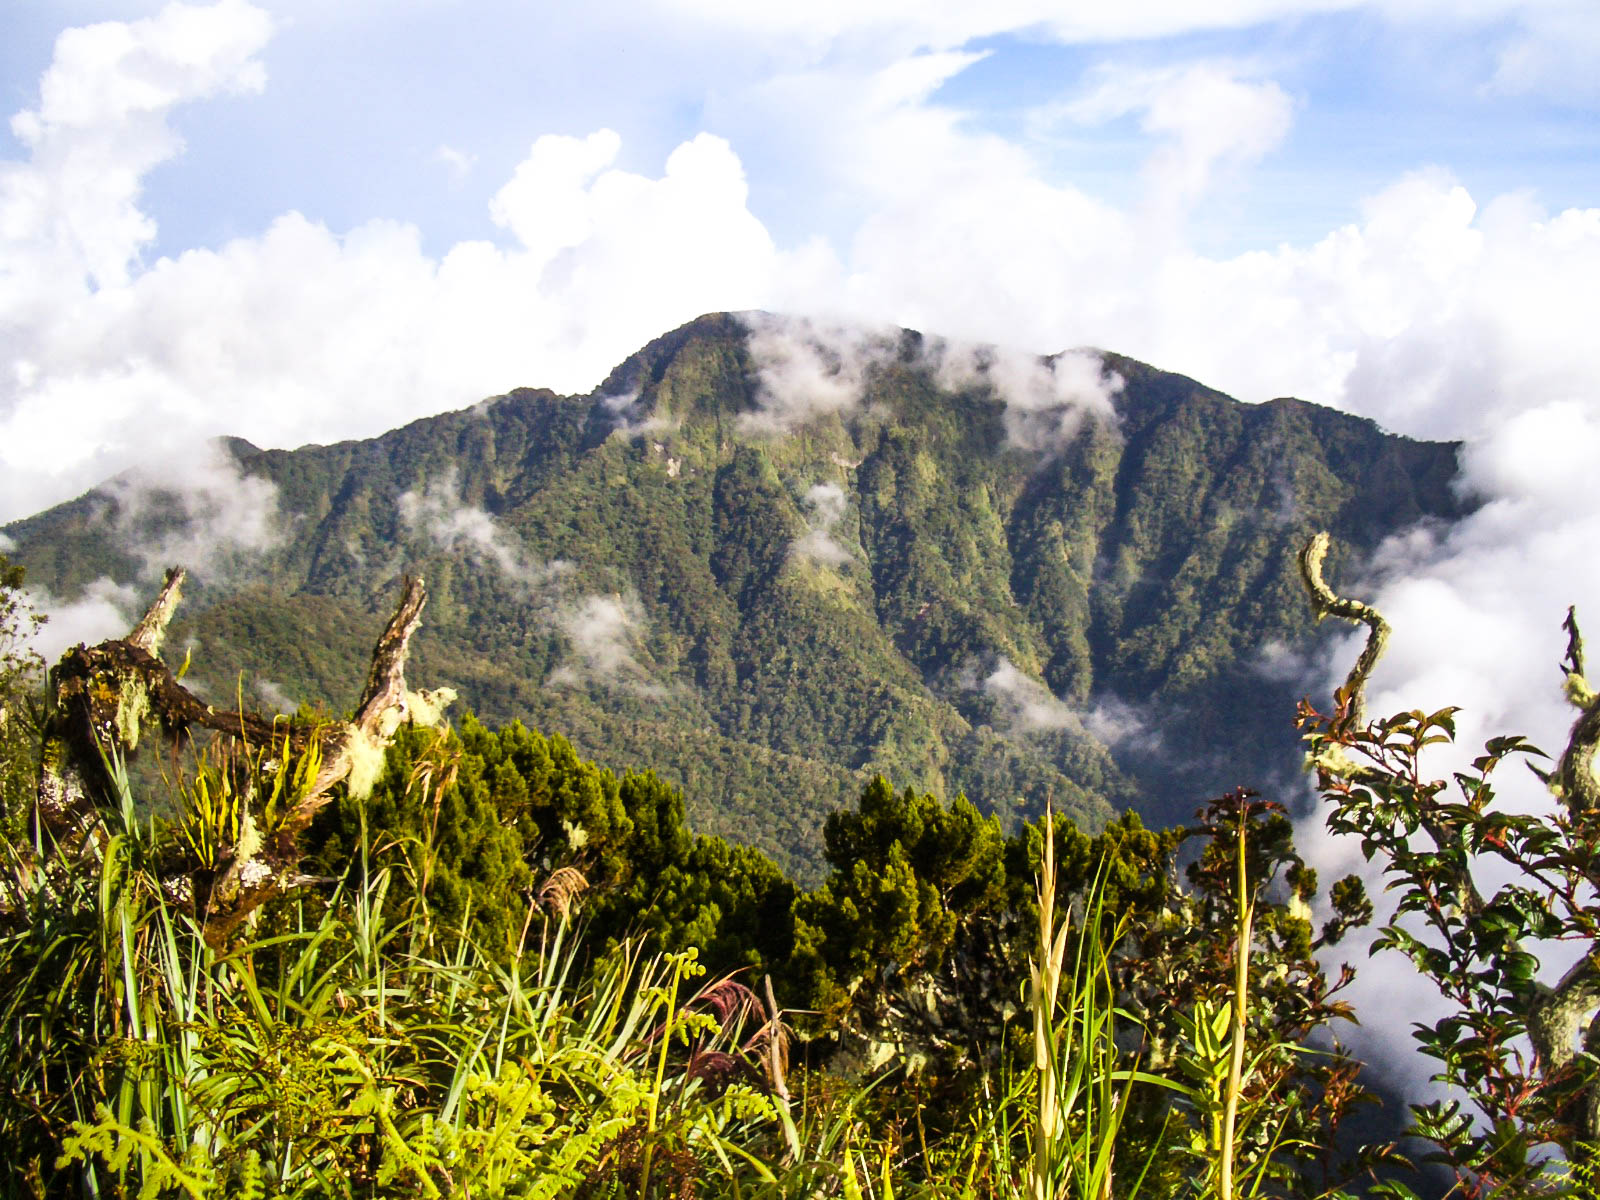 A wild forest of trees and plants backdropped by a green mountain (Mount Dulang-Dulang, the second highest mountain in the Philippines) swathed with cloud and mist